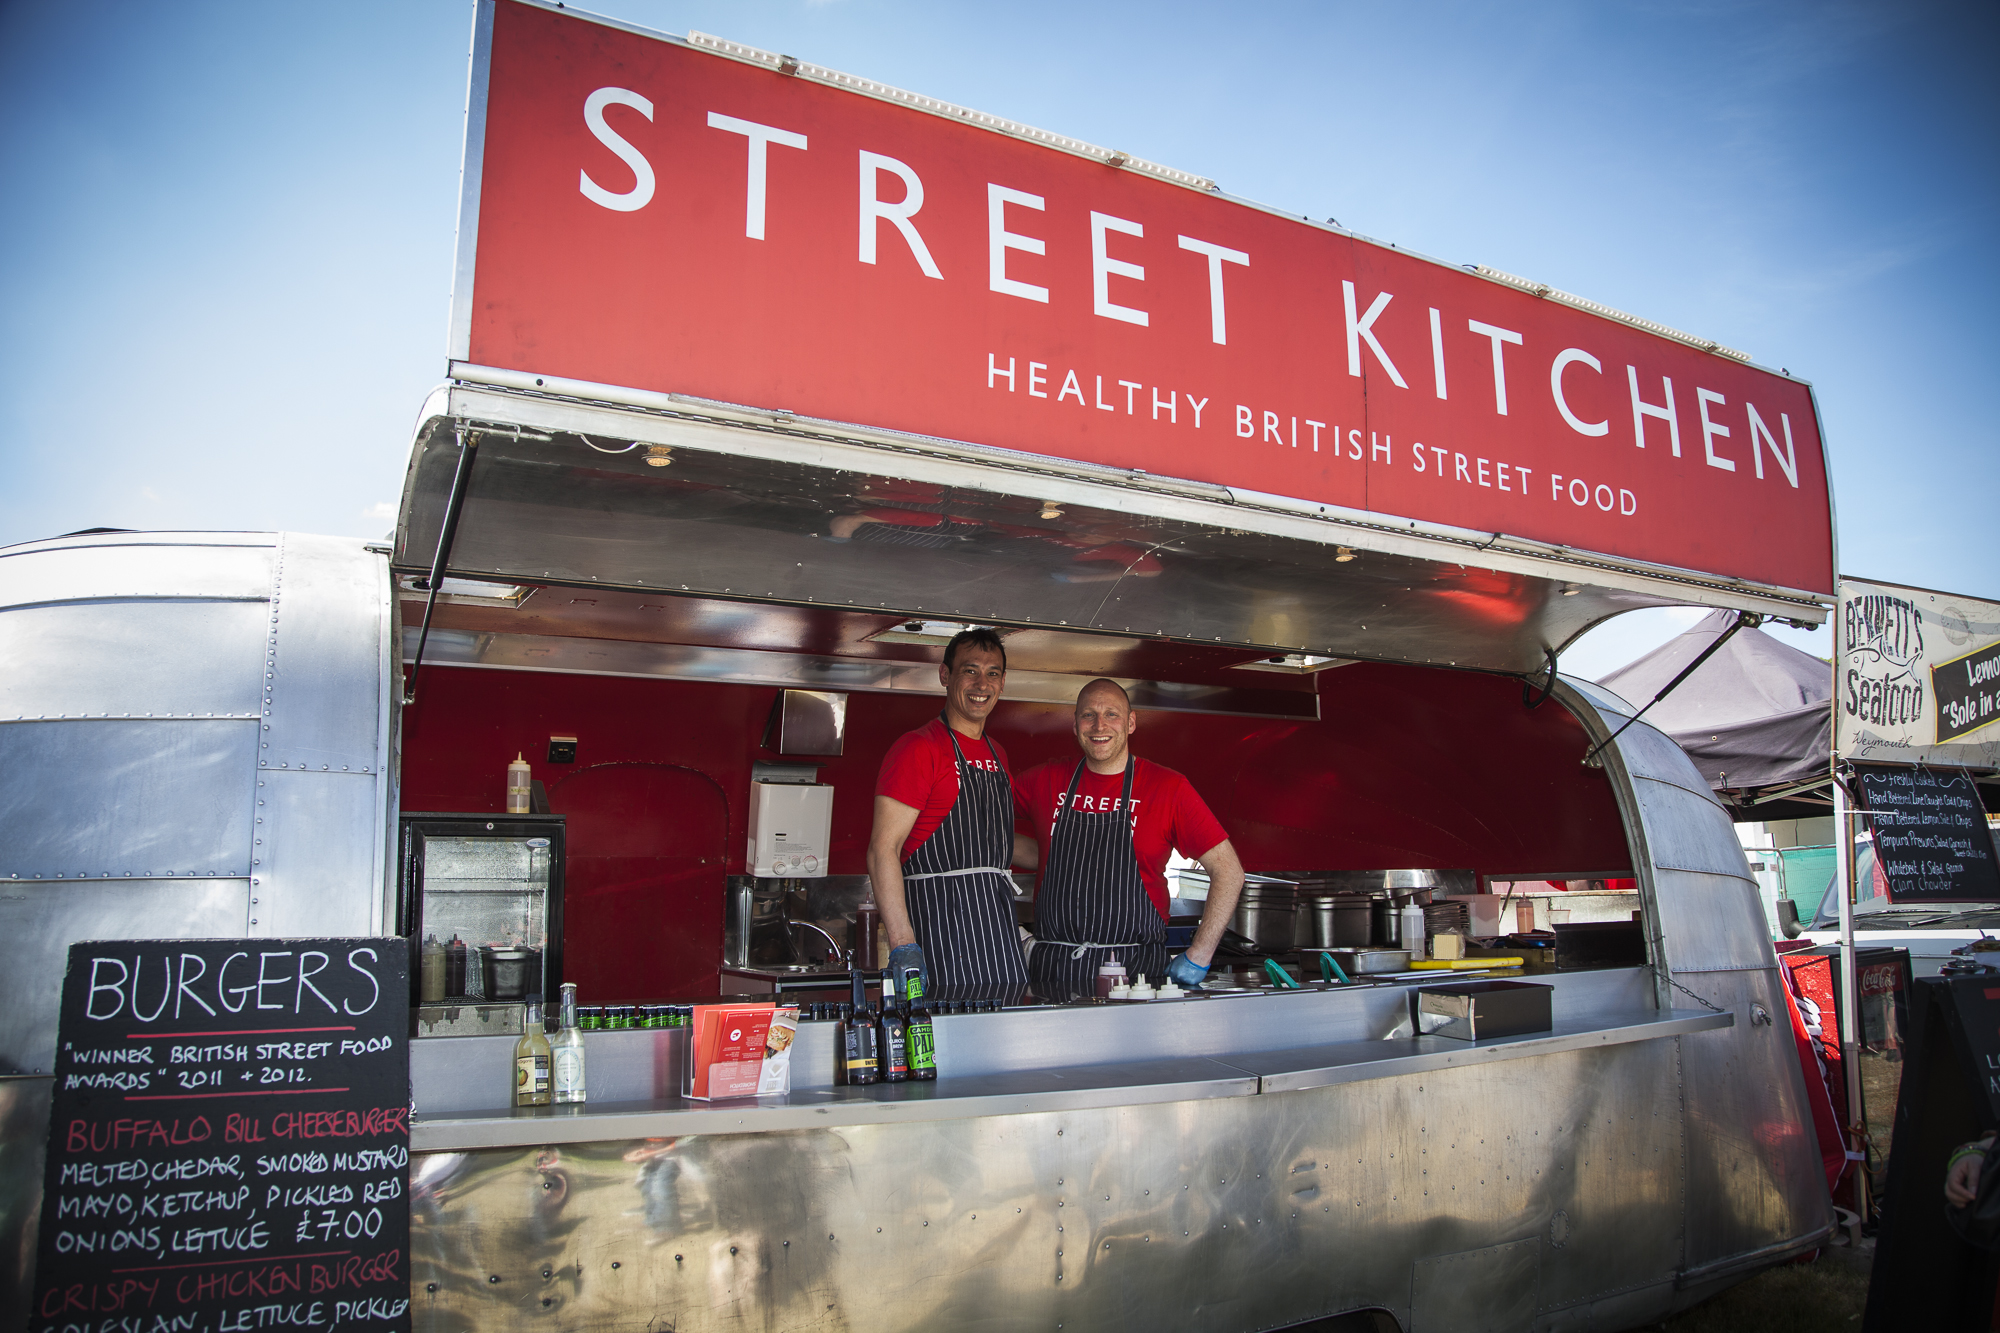 Jun Tunaka brought his Street Kitchen to Foodies' Street Food Avenue